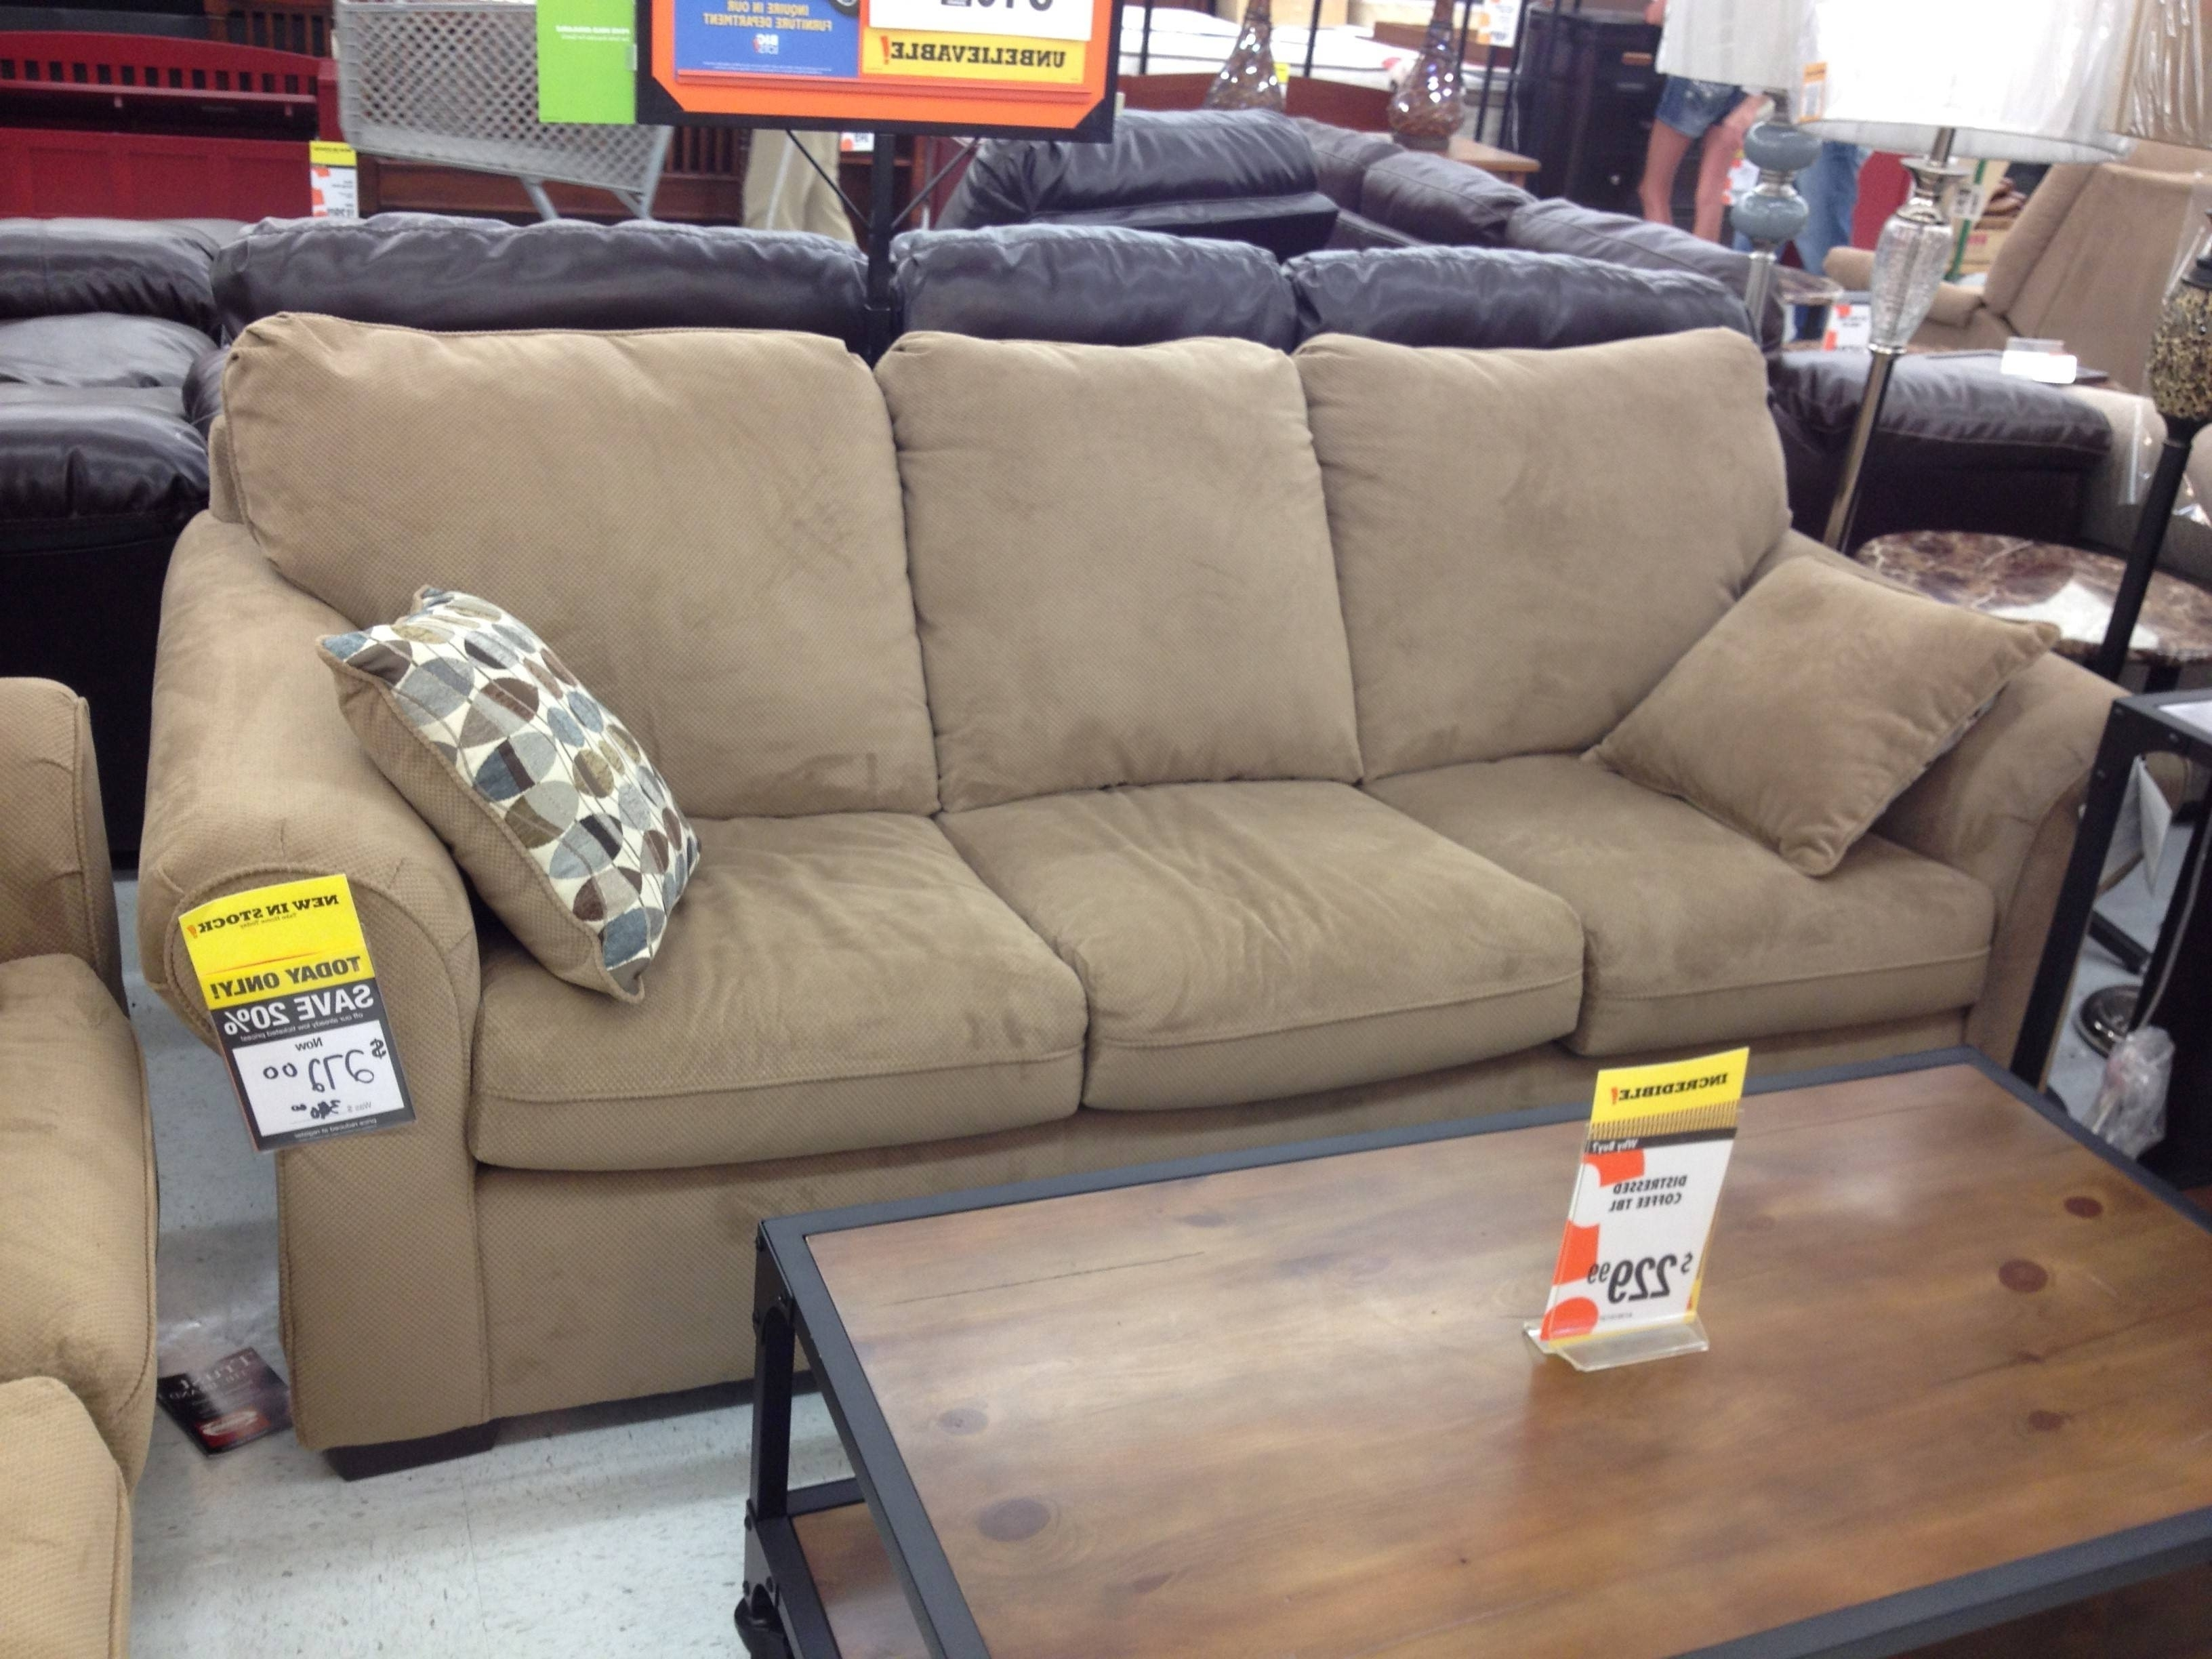 Picture of: Image Gallery Of Sectional Sofas At Big Lots View 20 Of 20 Photos